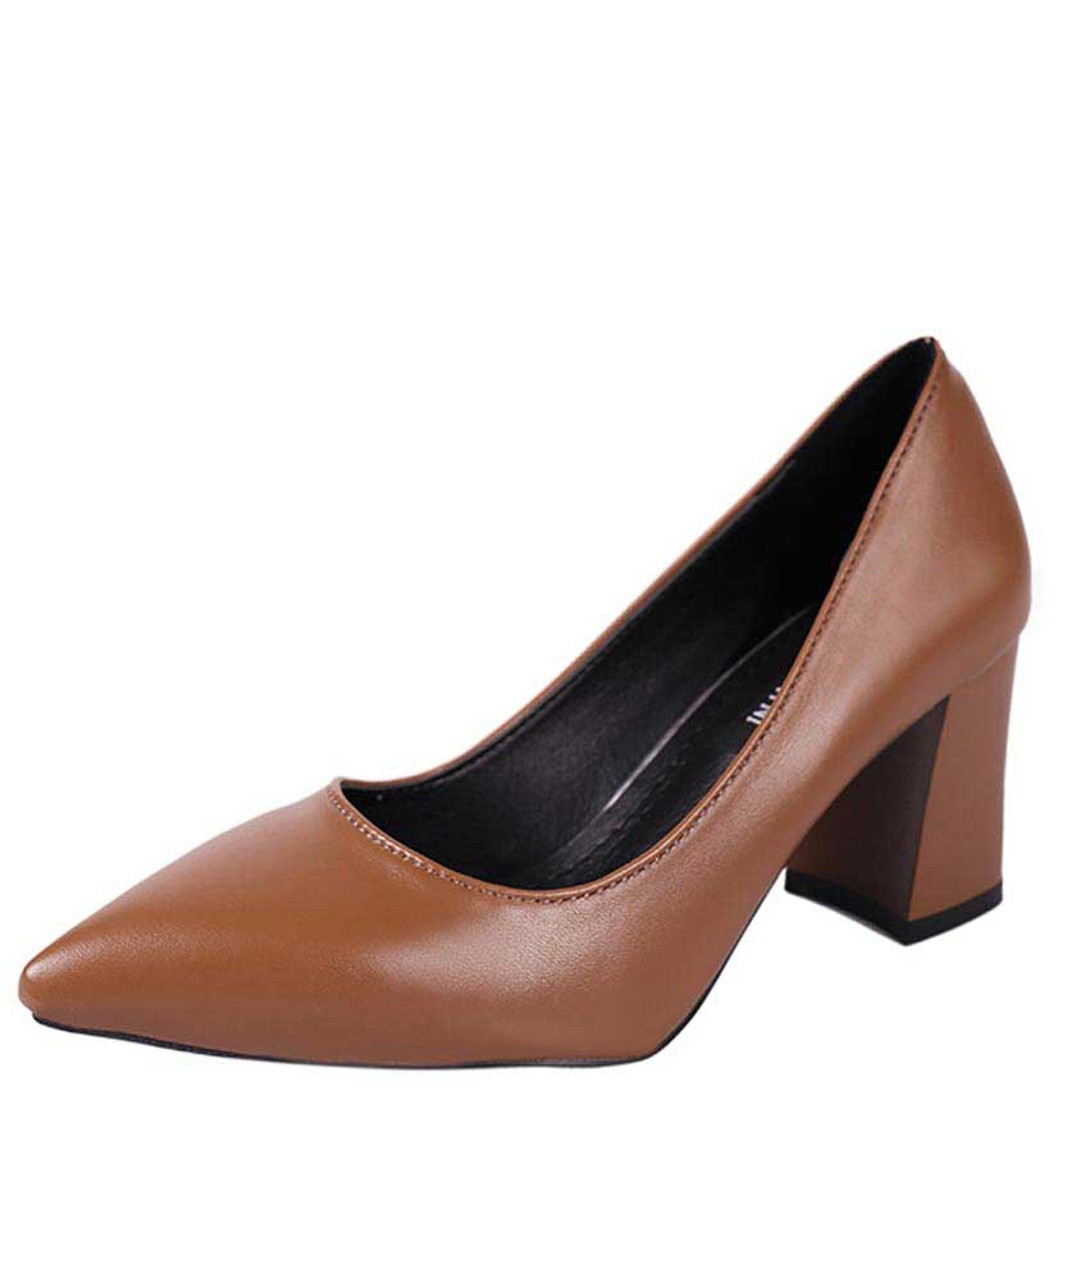 new high quality find workmanship new style of 2019 Brown slip on mid thick heel dress shoe in plain